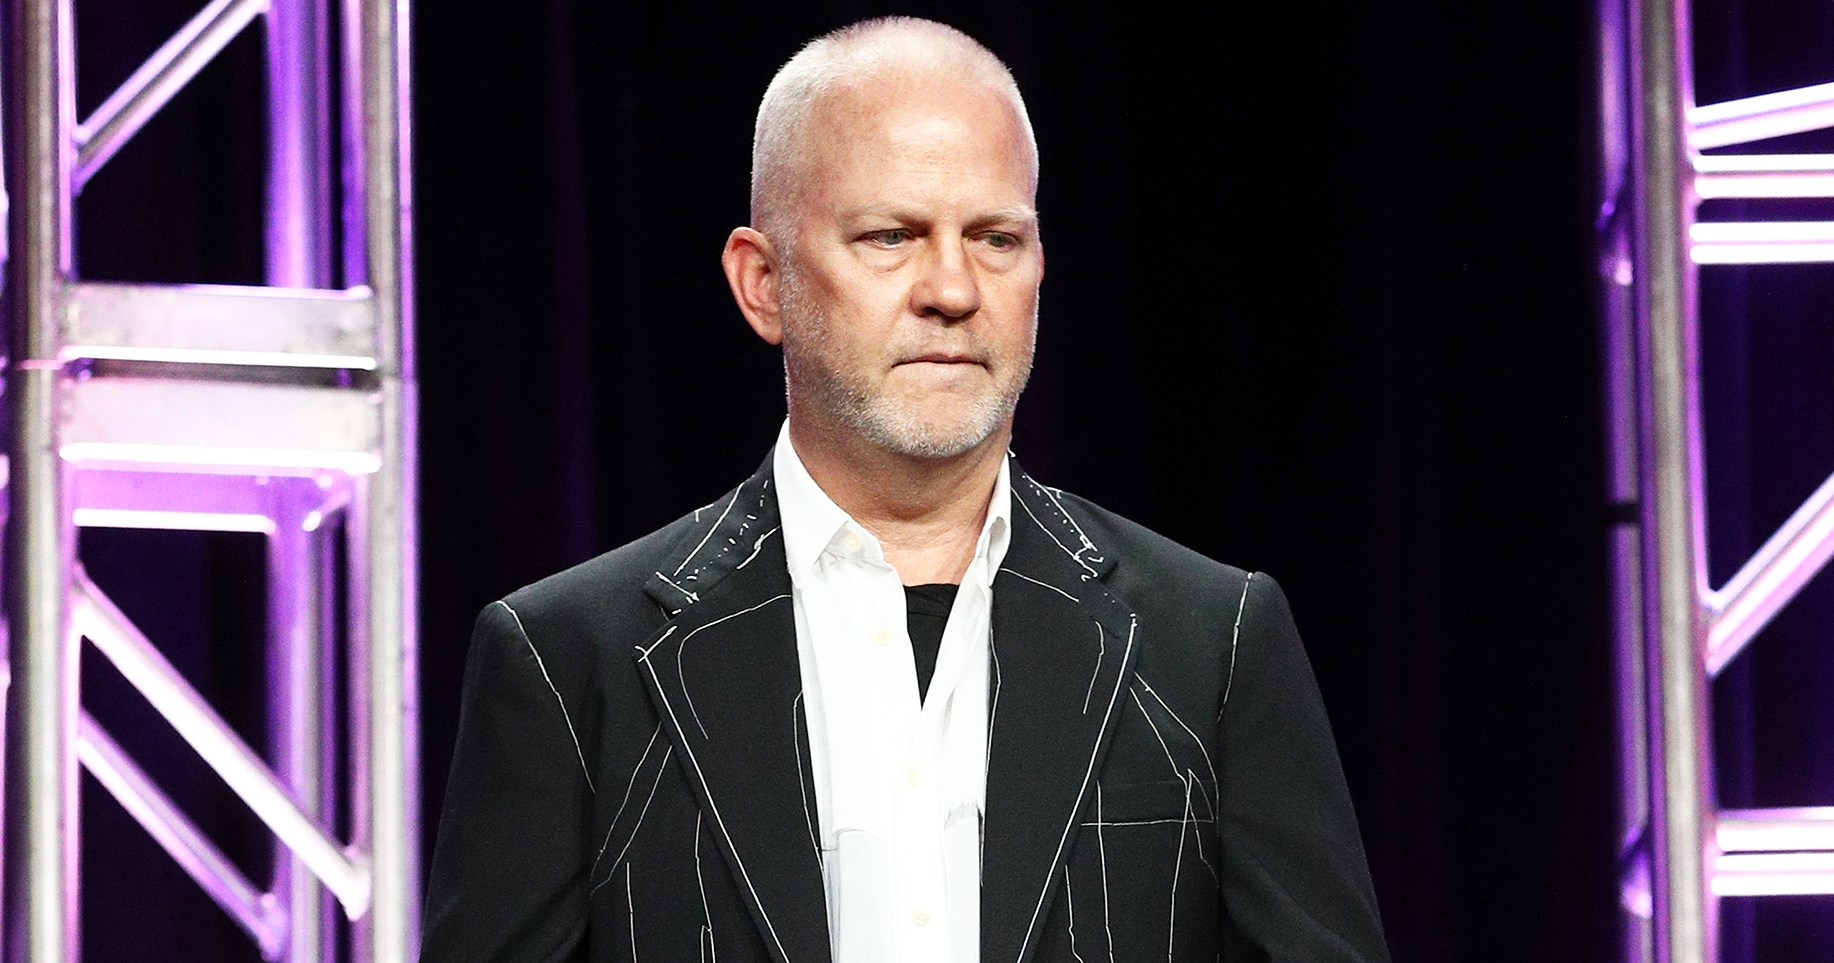 Ryan Murphy Reveals Son Ford Cancer Battle